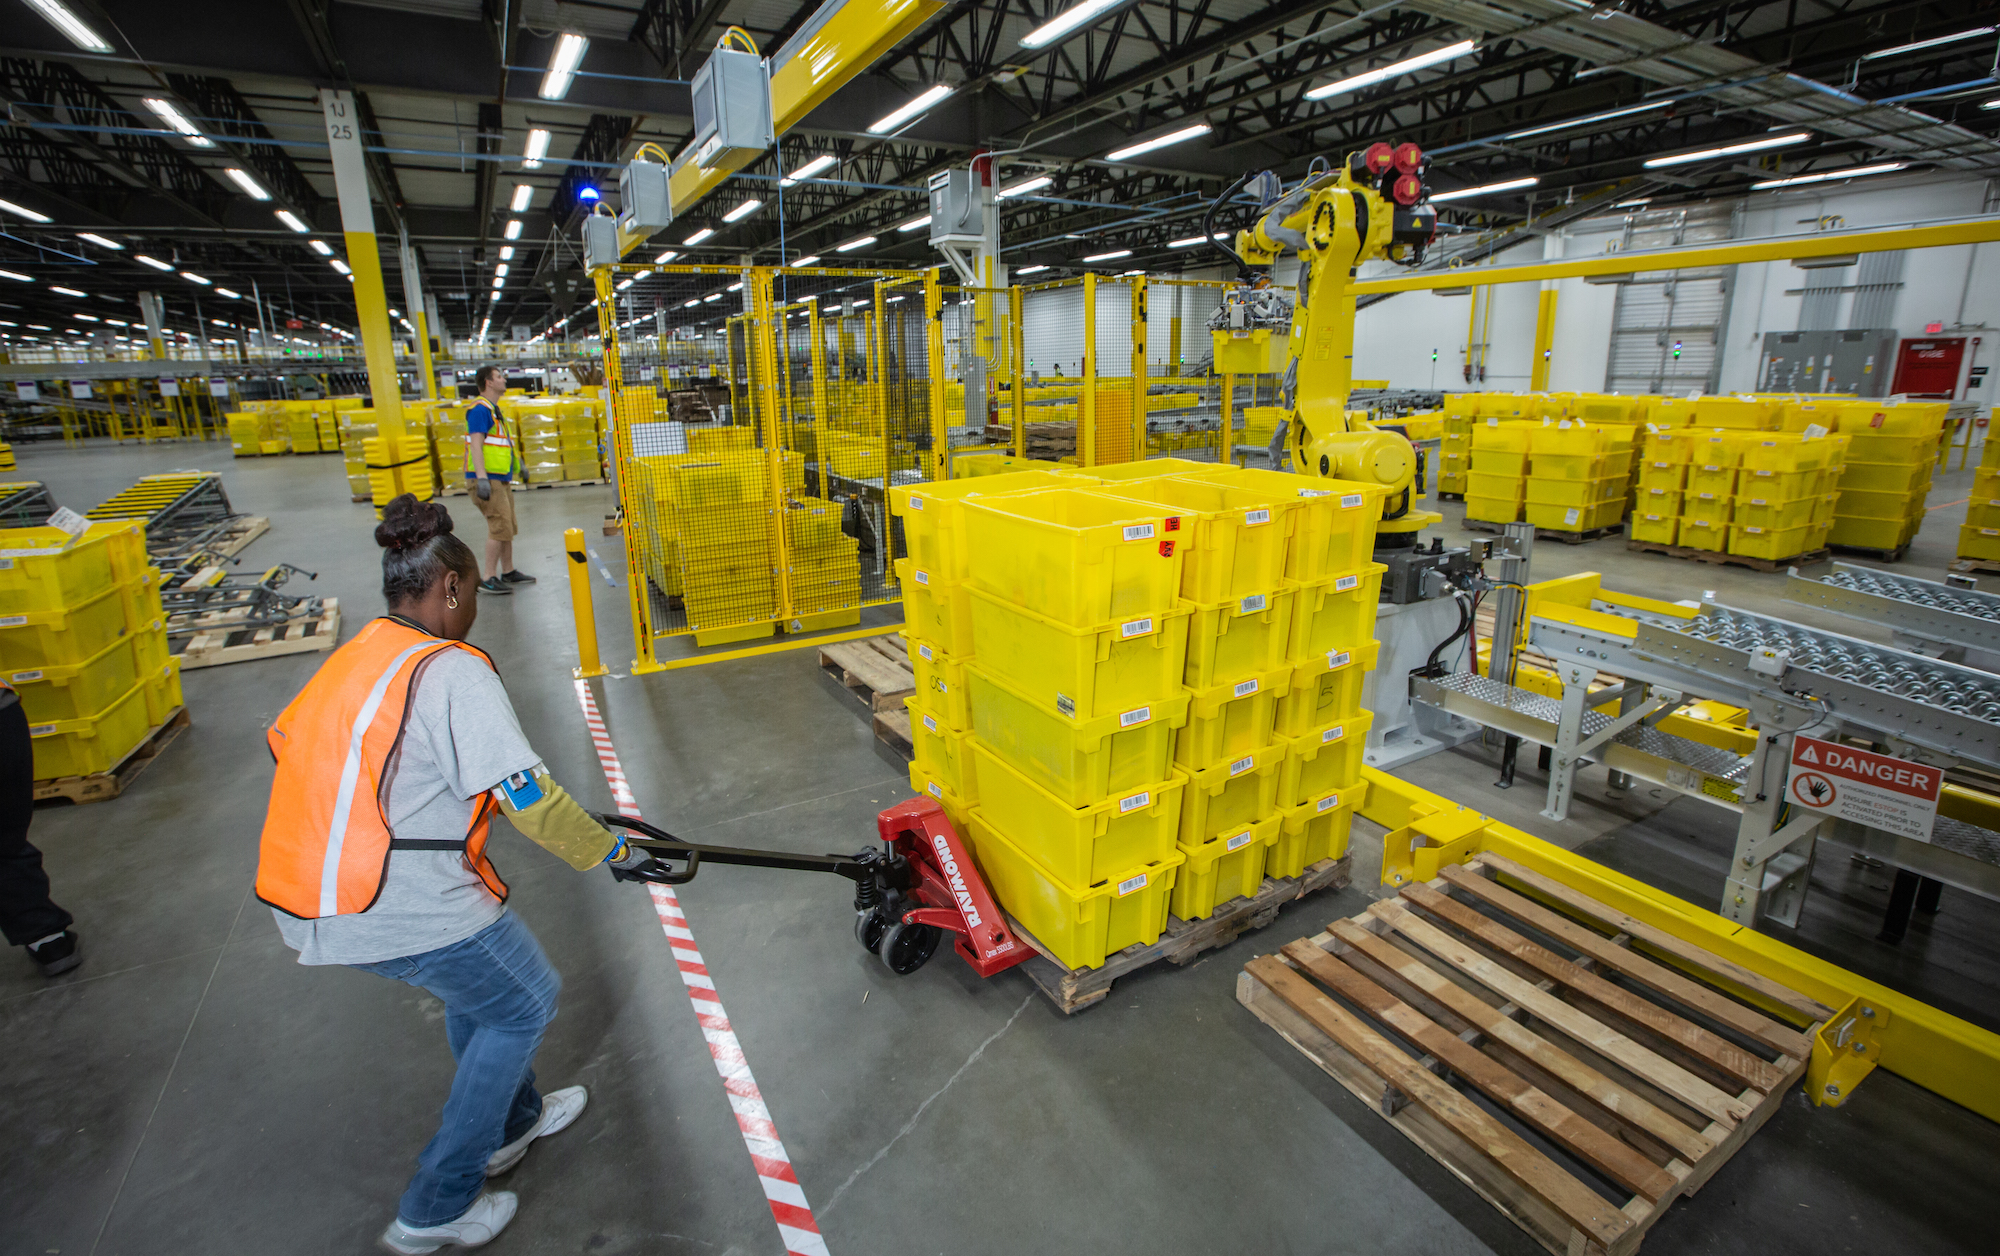 Warehouse Employment as a Driver of Inequality in the Inland Empire: The Experiences of Young Amazon Warehouse Workers